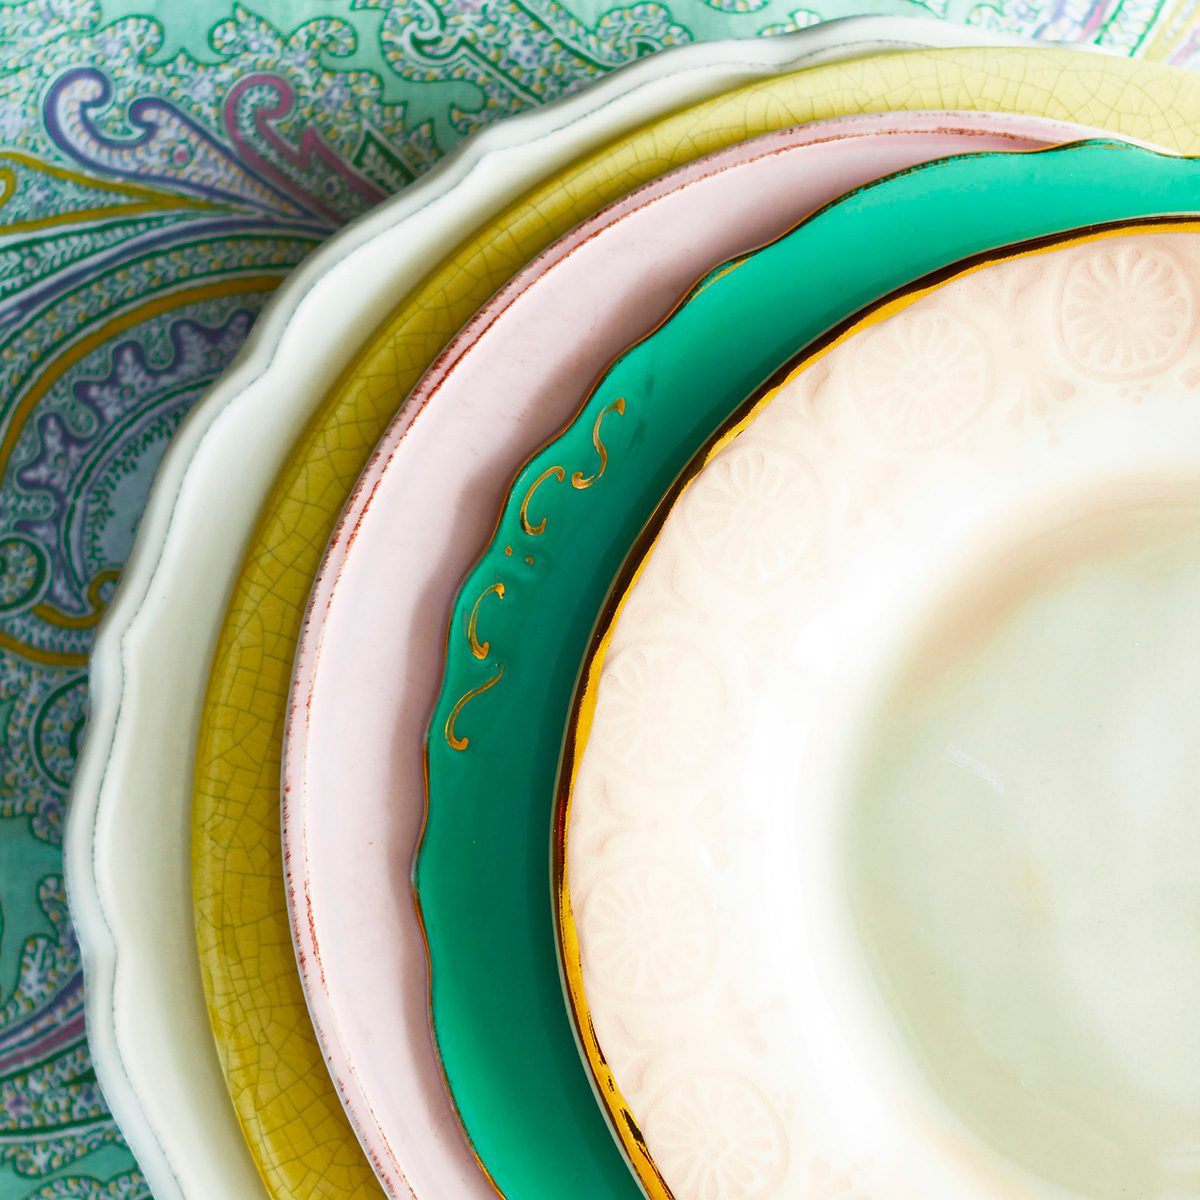 Variety of plates, close up view of edges